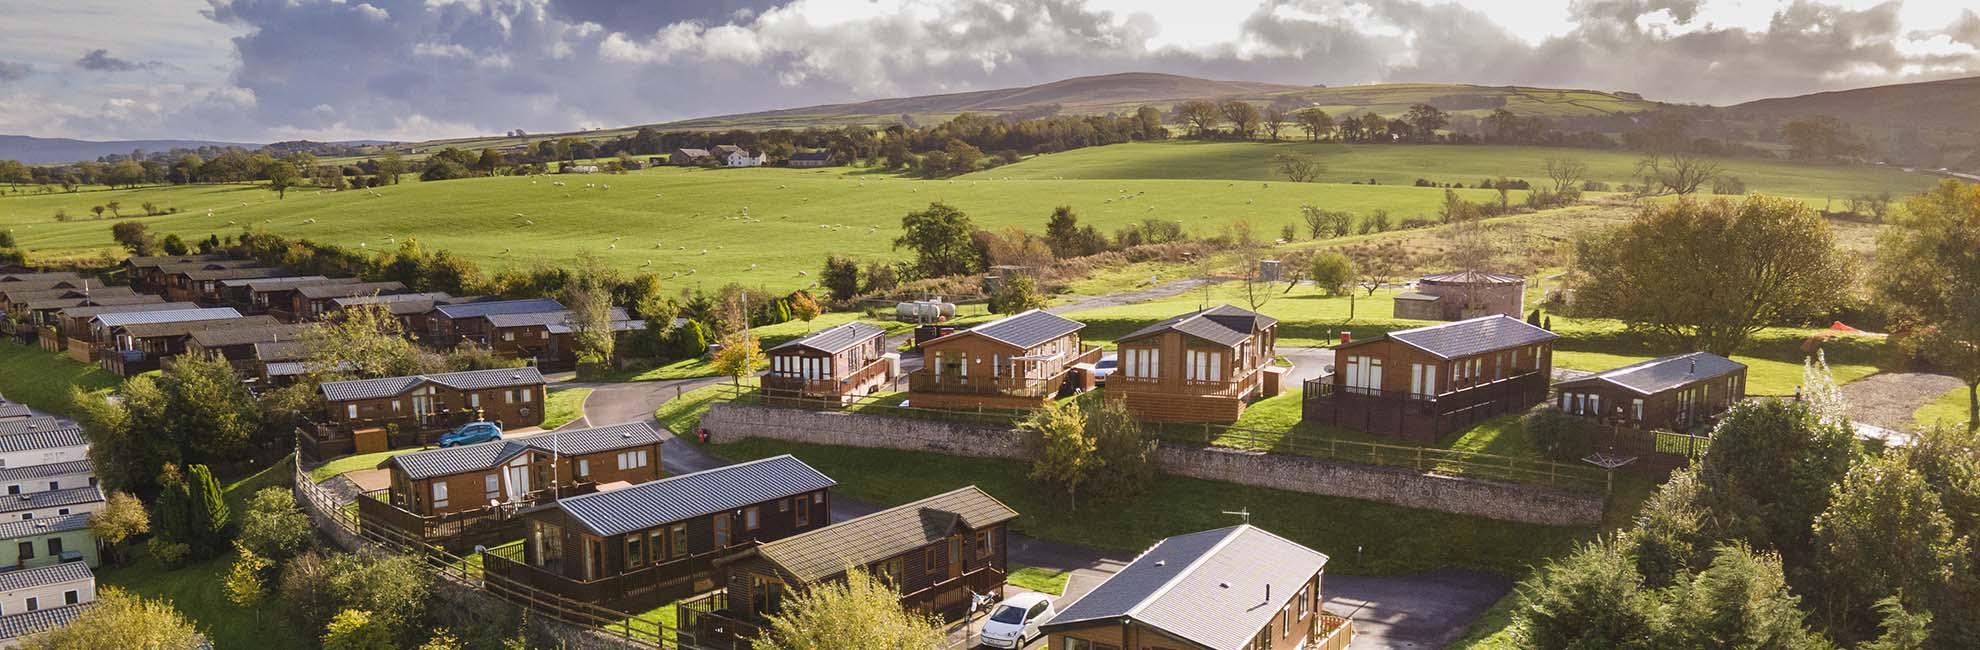 View of the caravans and surrounding countryside